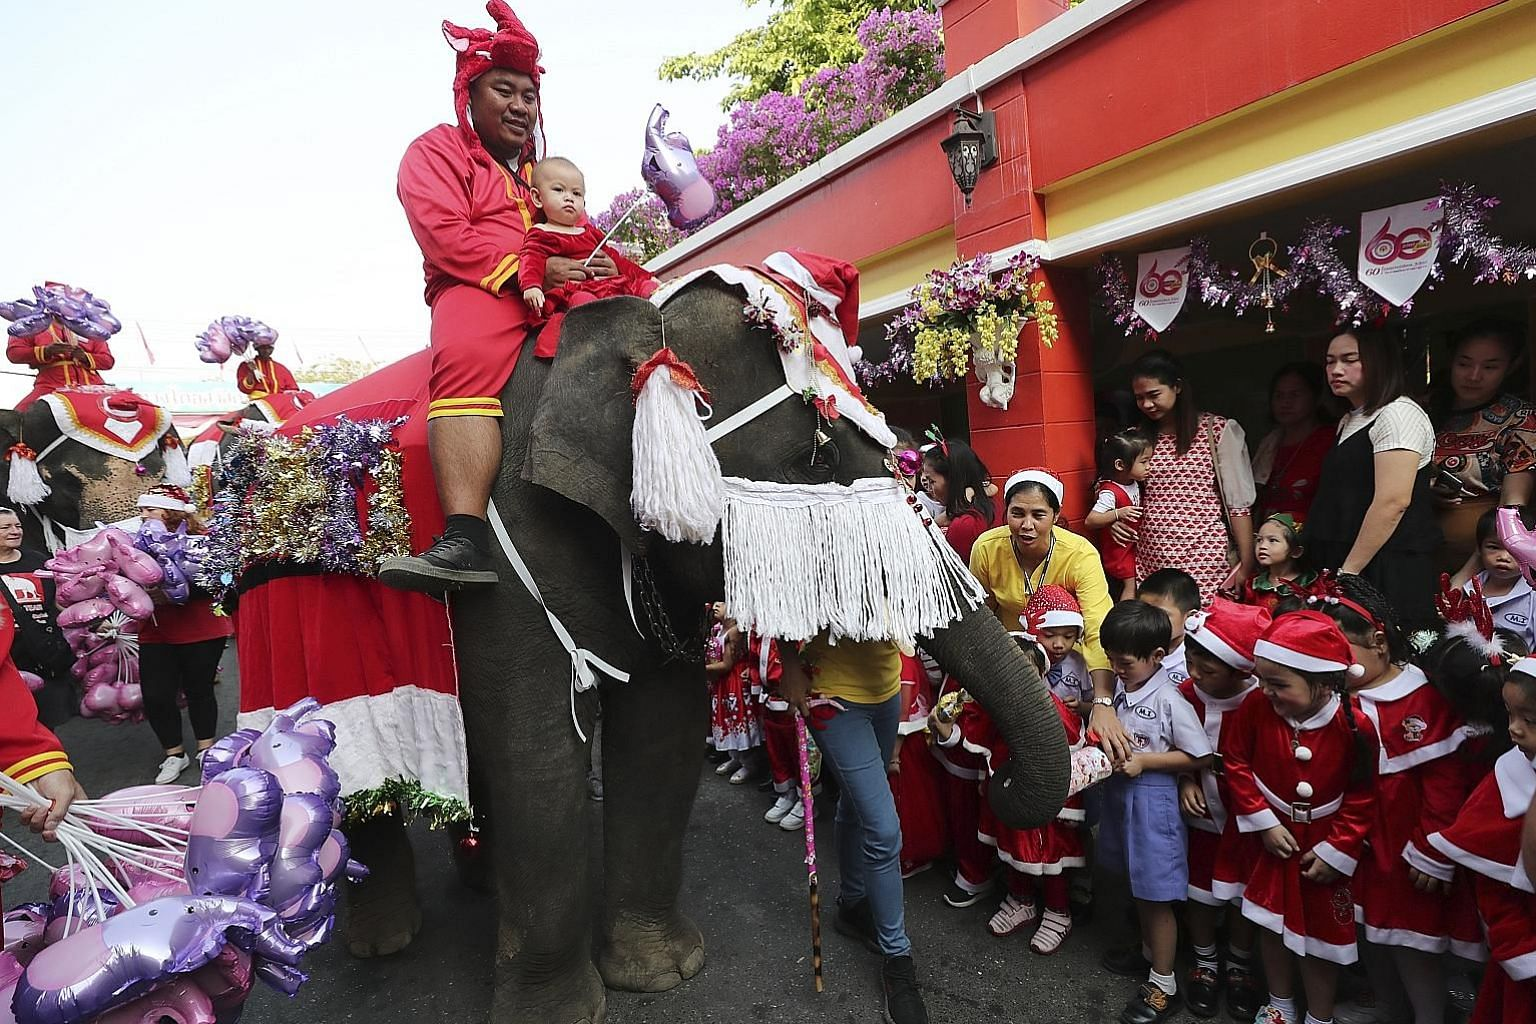 Elephants dressed as Santa Claus gave out presents and candy to pupils in Thailand yesterday in an annual Christmas tradition in the mostly Buddhist country. The Christmas celebration at Jirasartwitthaya School in Ayutthaya, north of Bangkok, has run